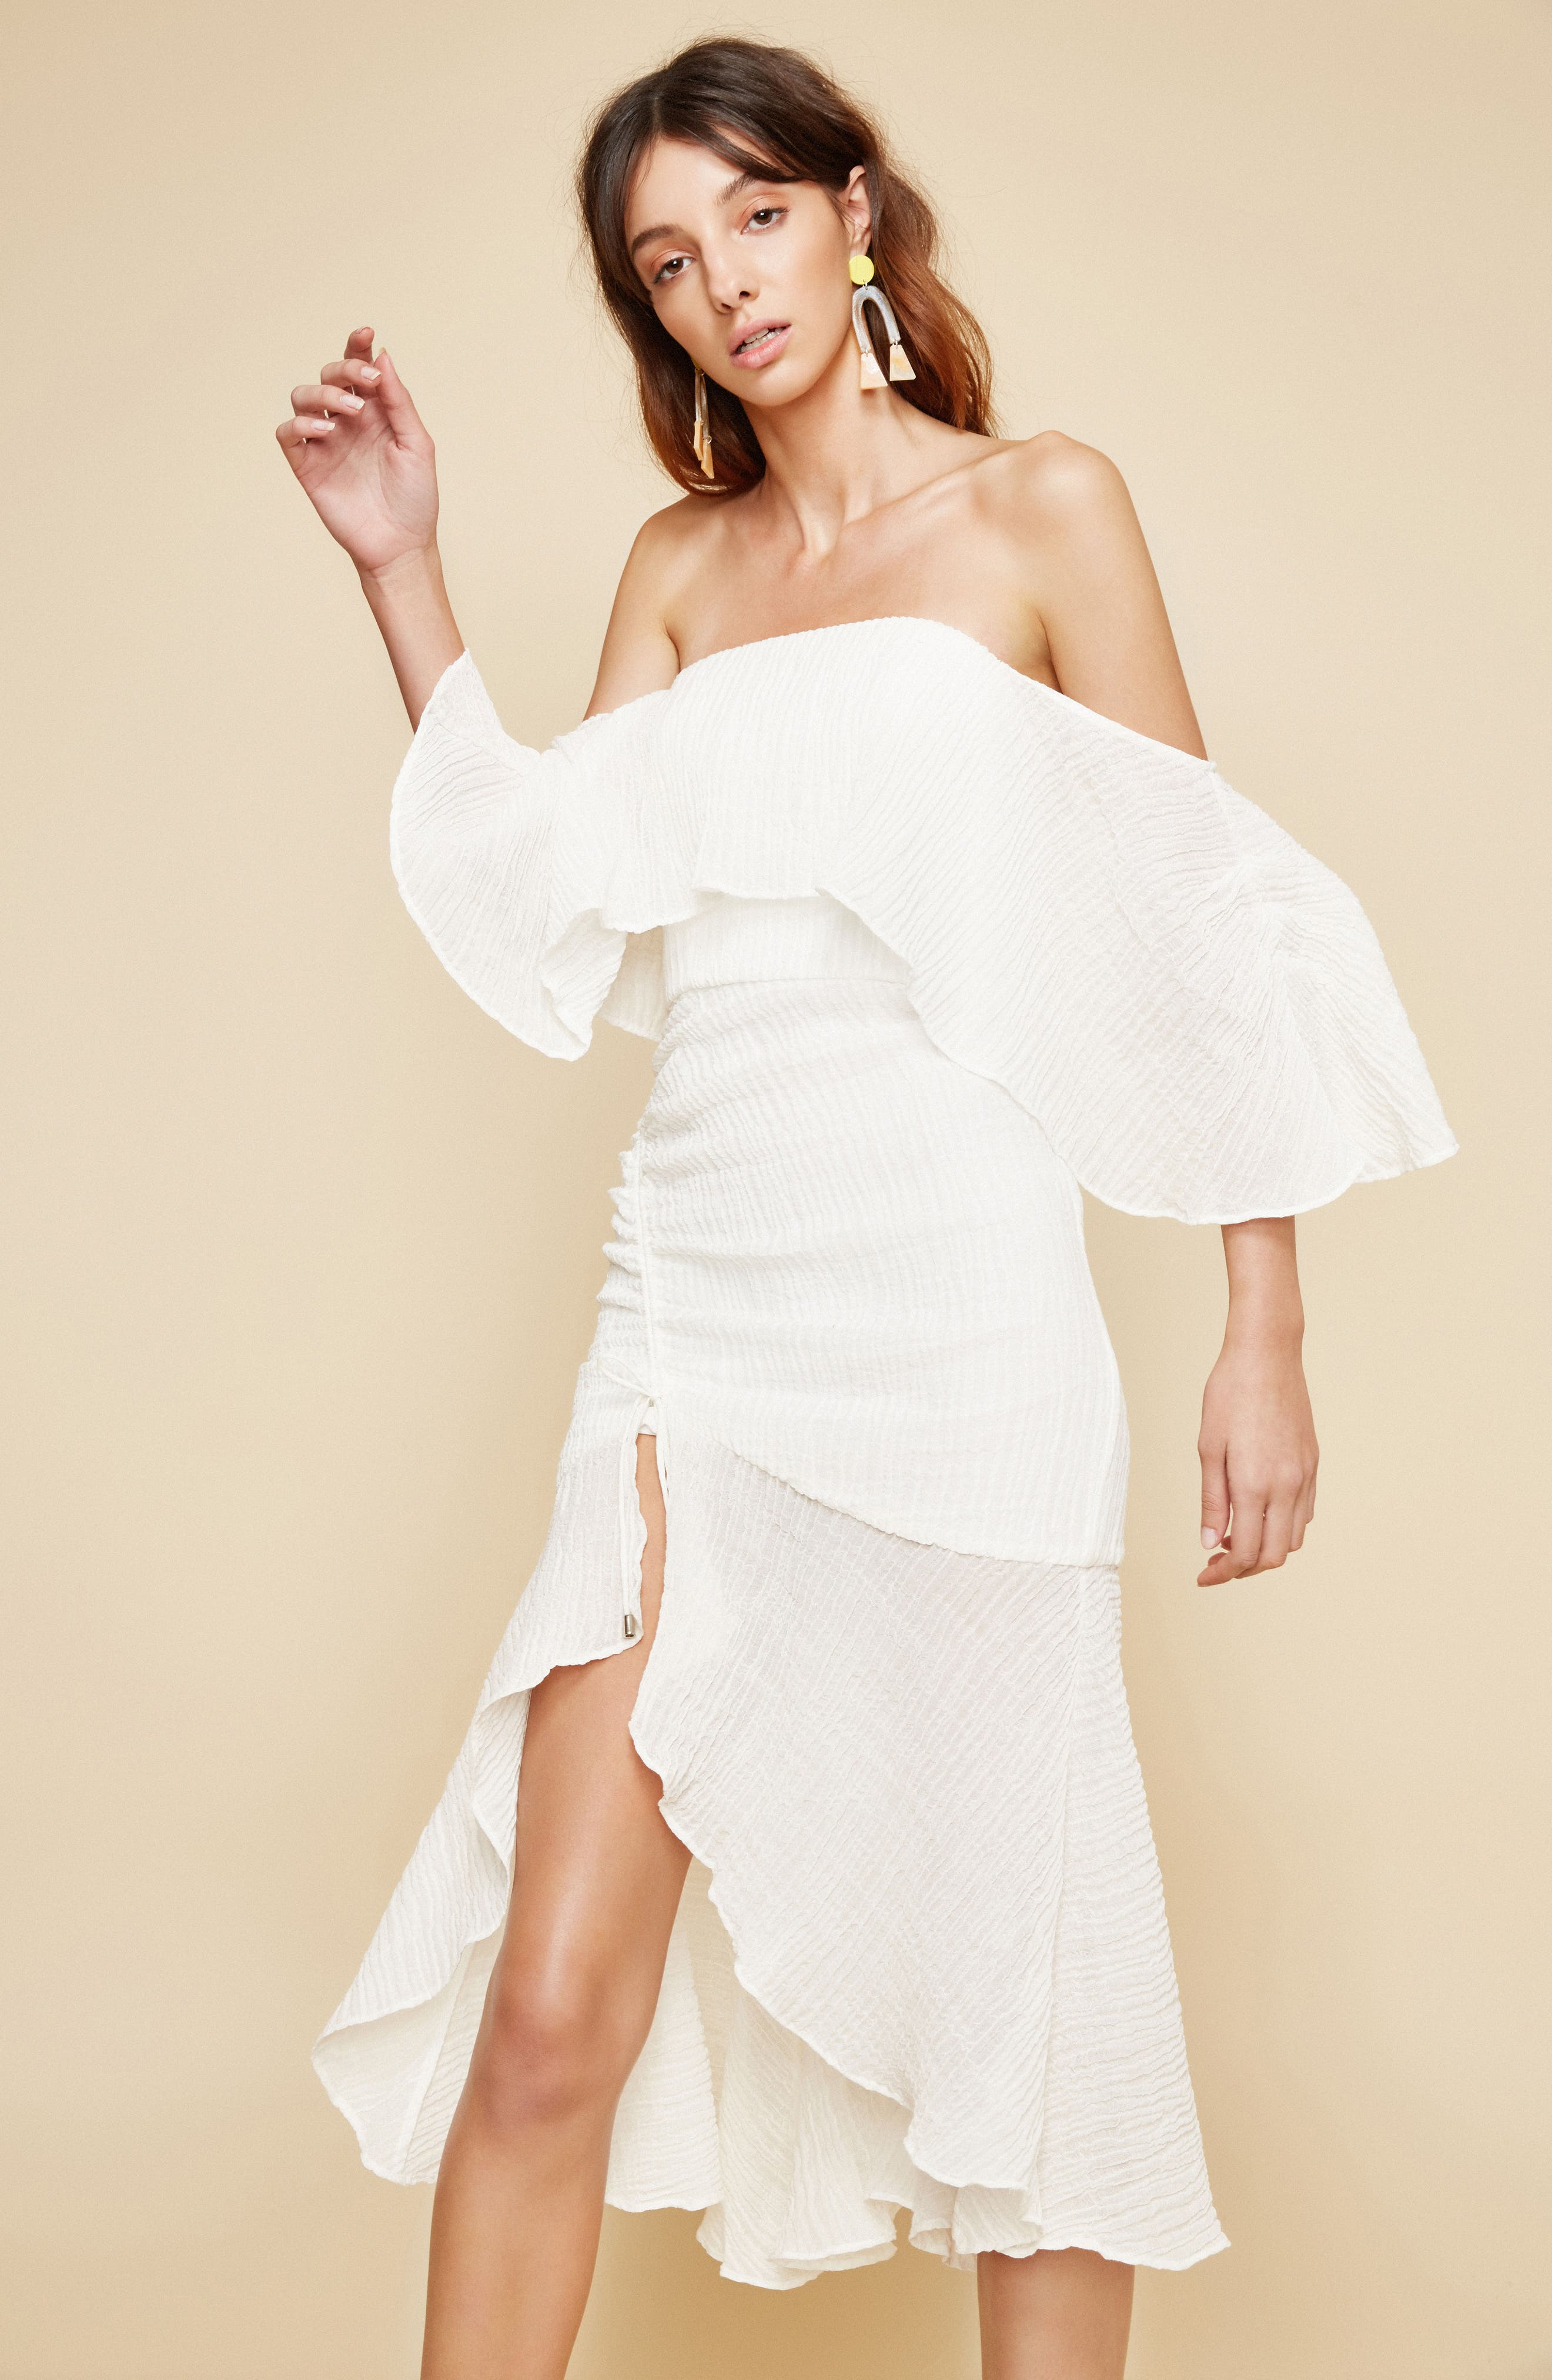 Sacrifices Ruched Off the Shoulder Dress,                             Alternate thumbnail 2, color,                             Ivory